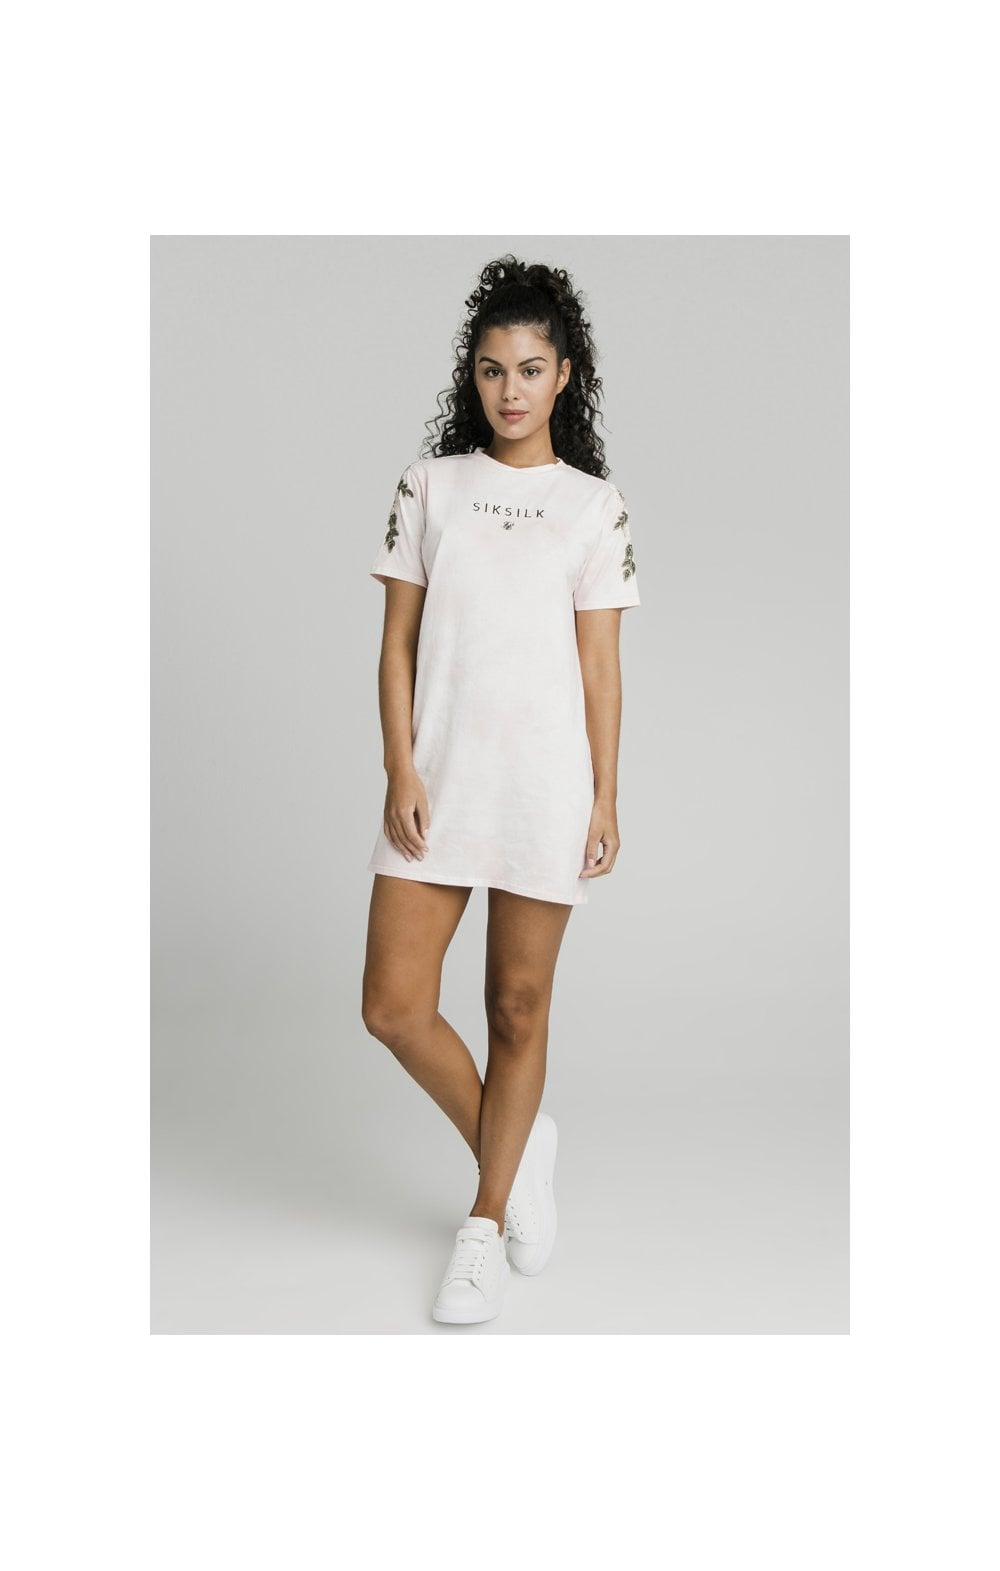 SikSilk Tye-Dye T-Shirt Dress - Pink (3)